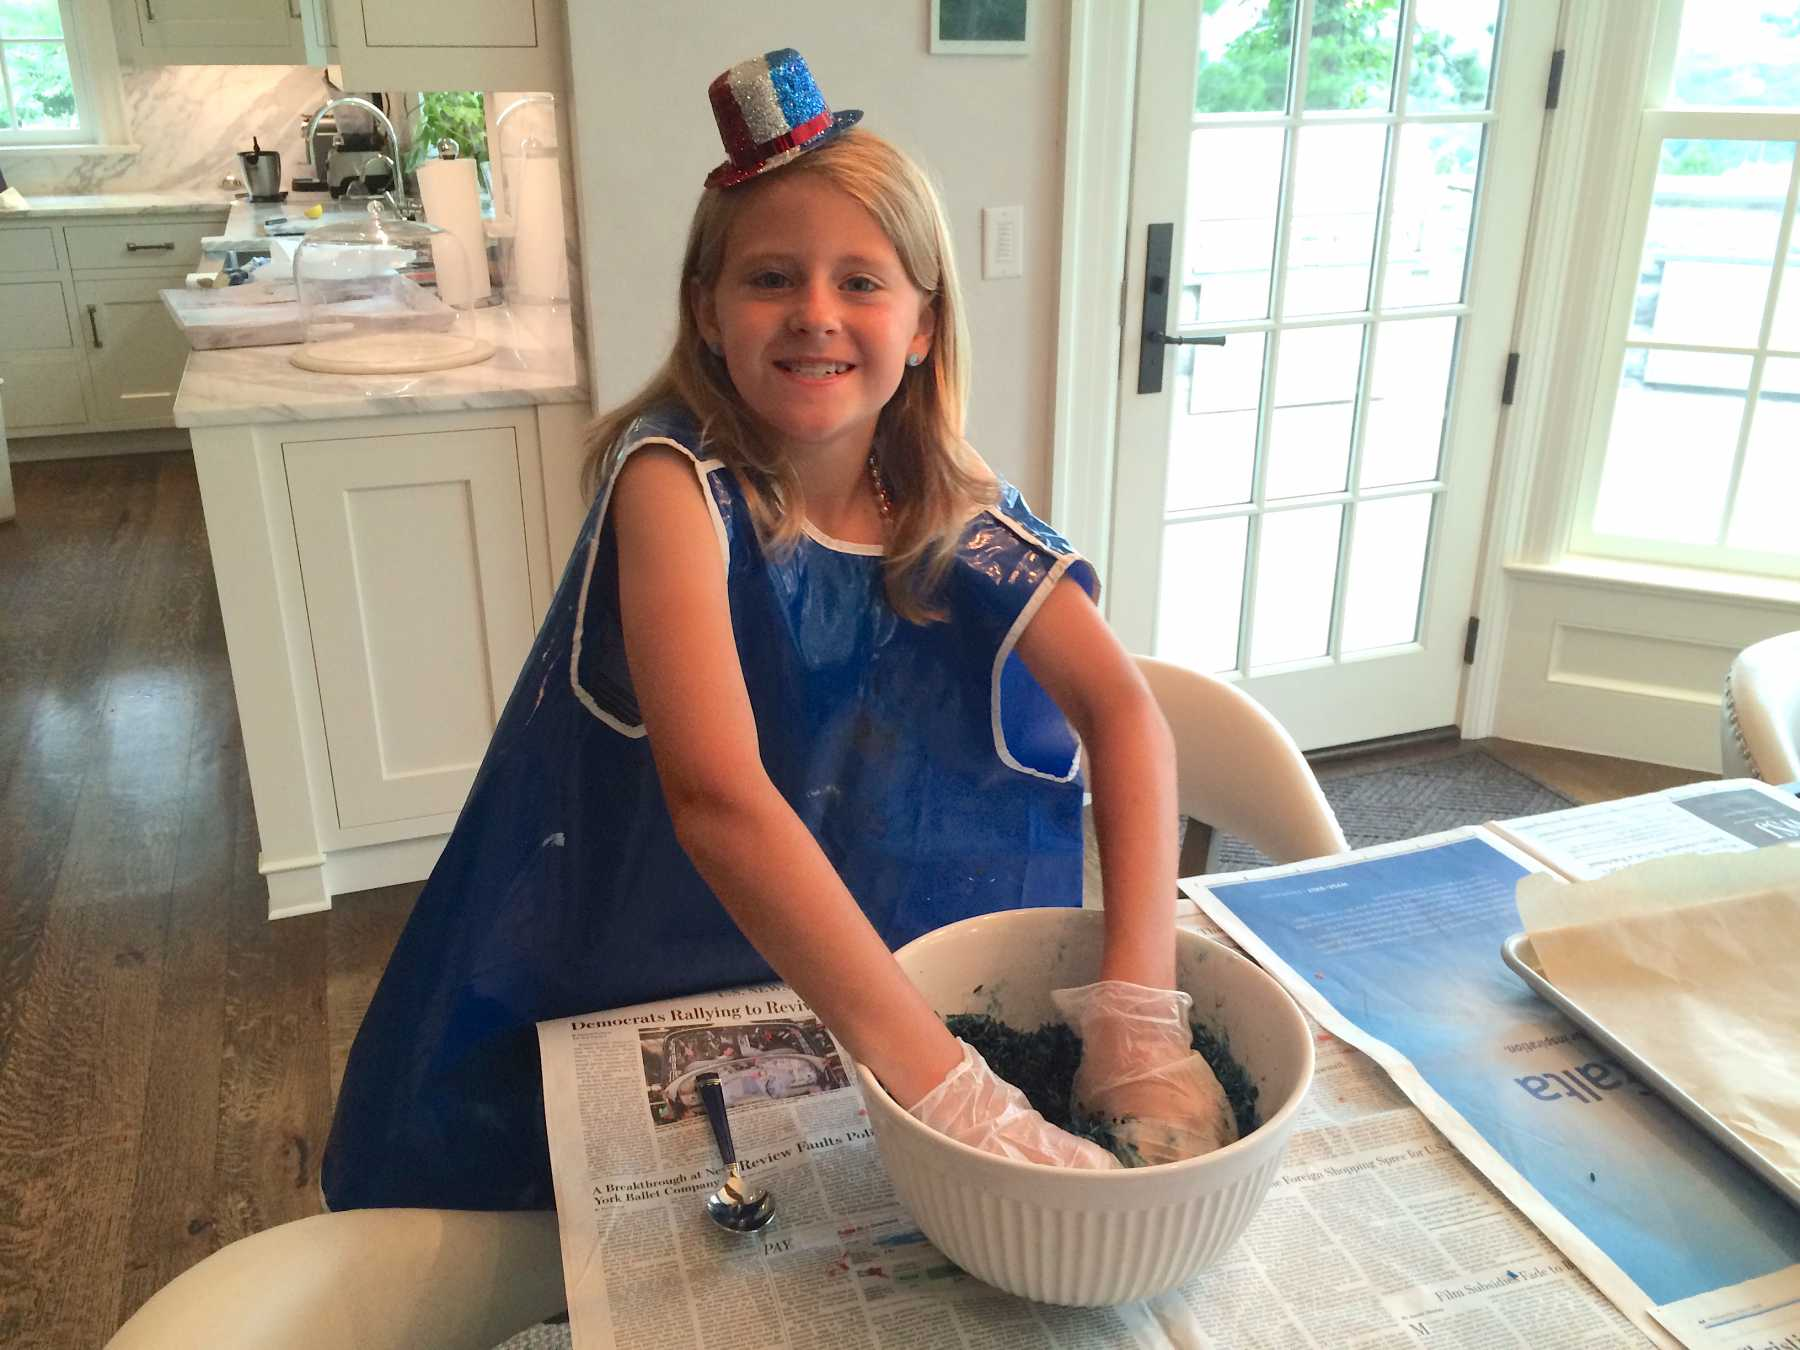 4th of July - Brynne DIY Project